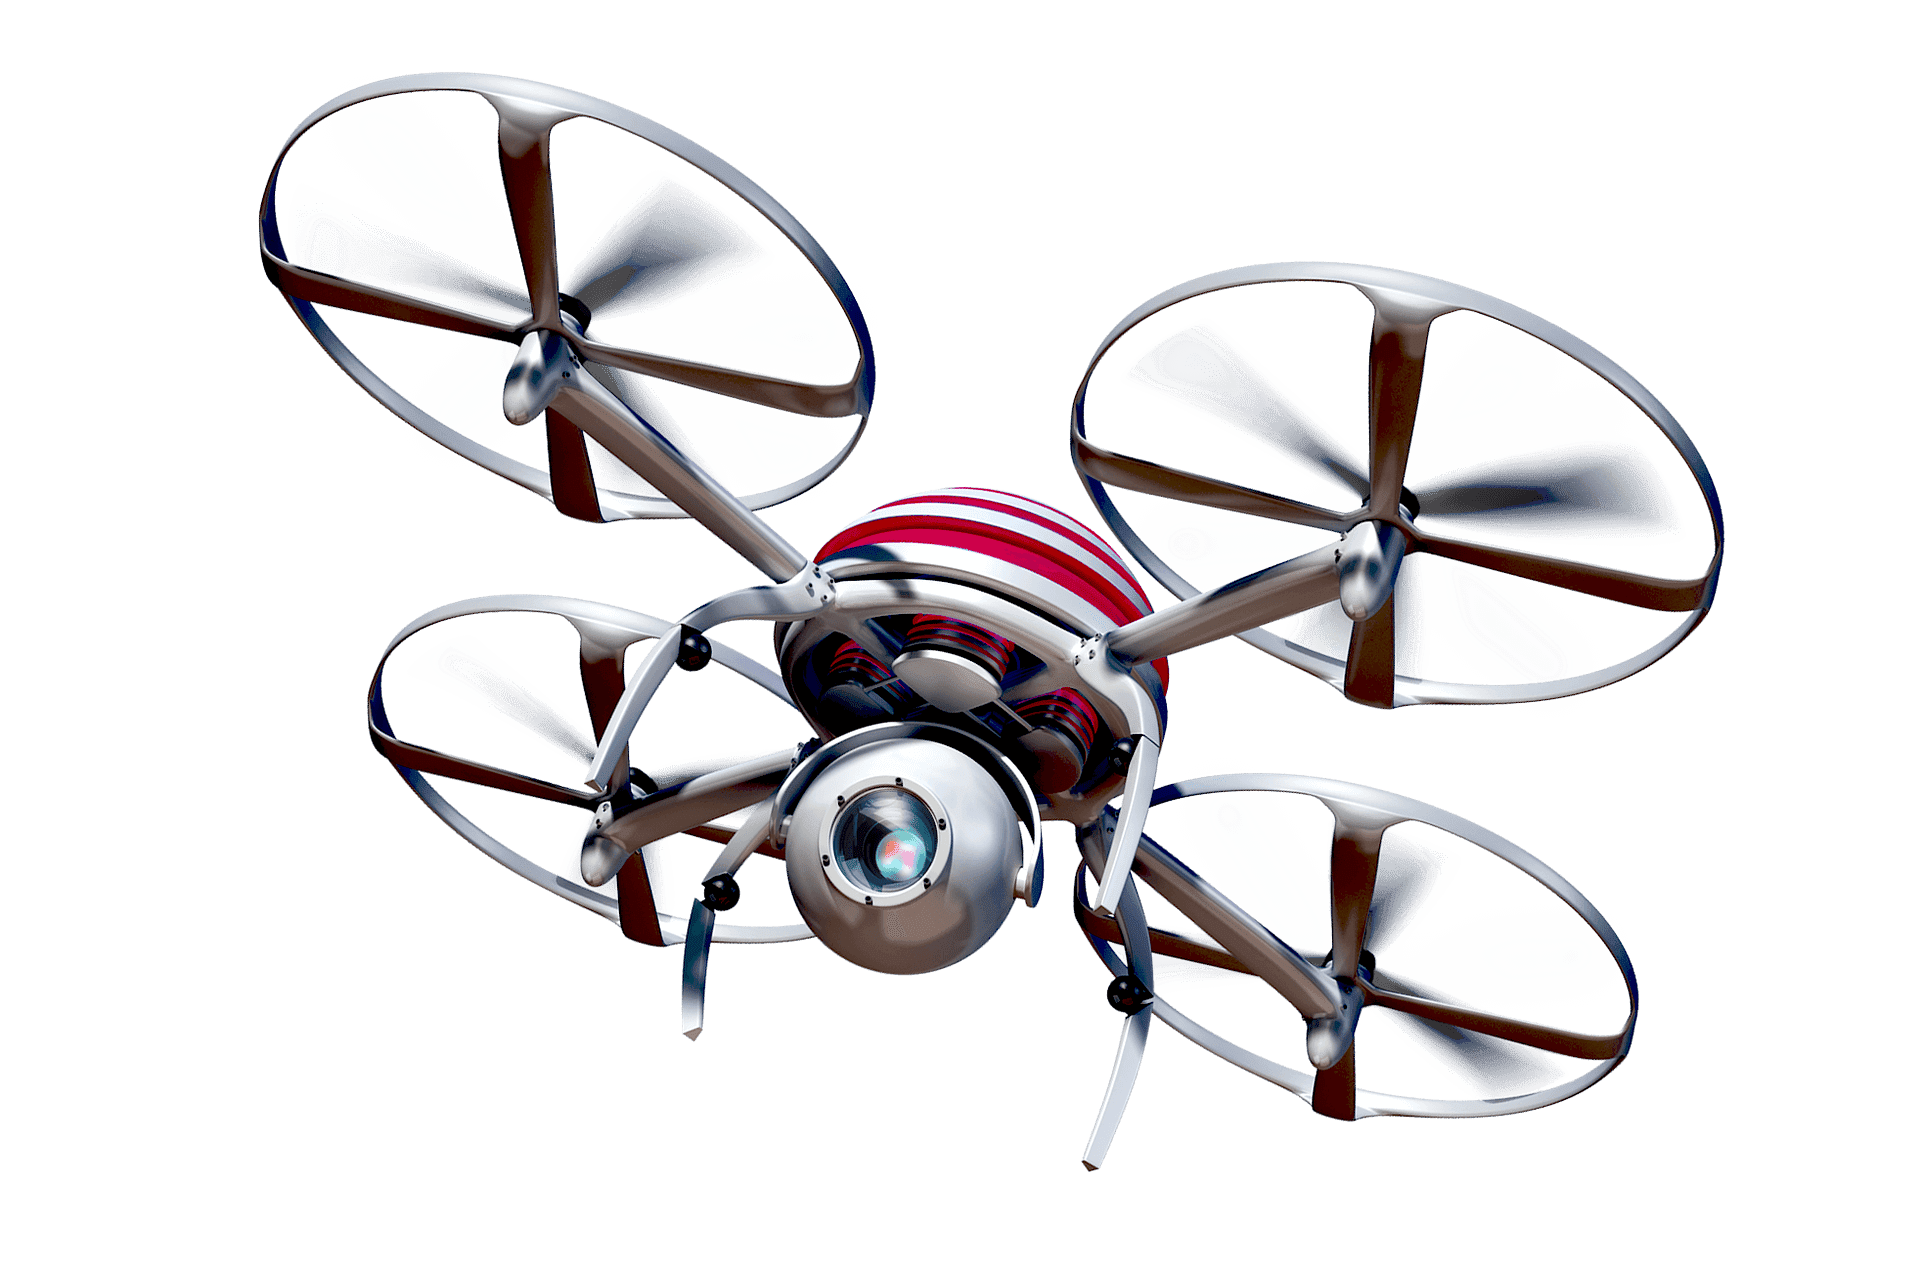 content/nl-nl/images/repository/isc/2020/a-spy-drone-with-large-camera-lens.png